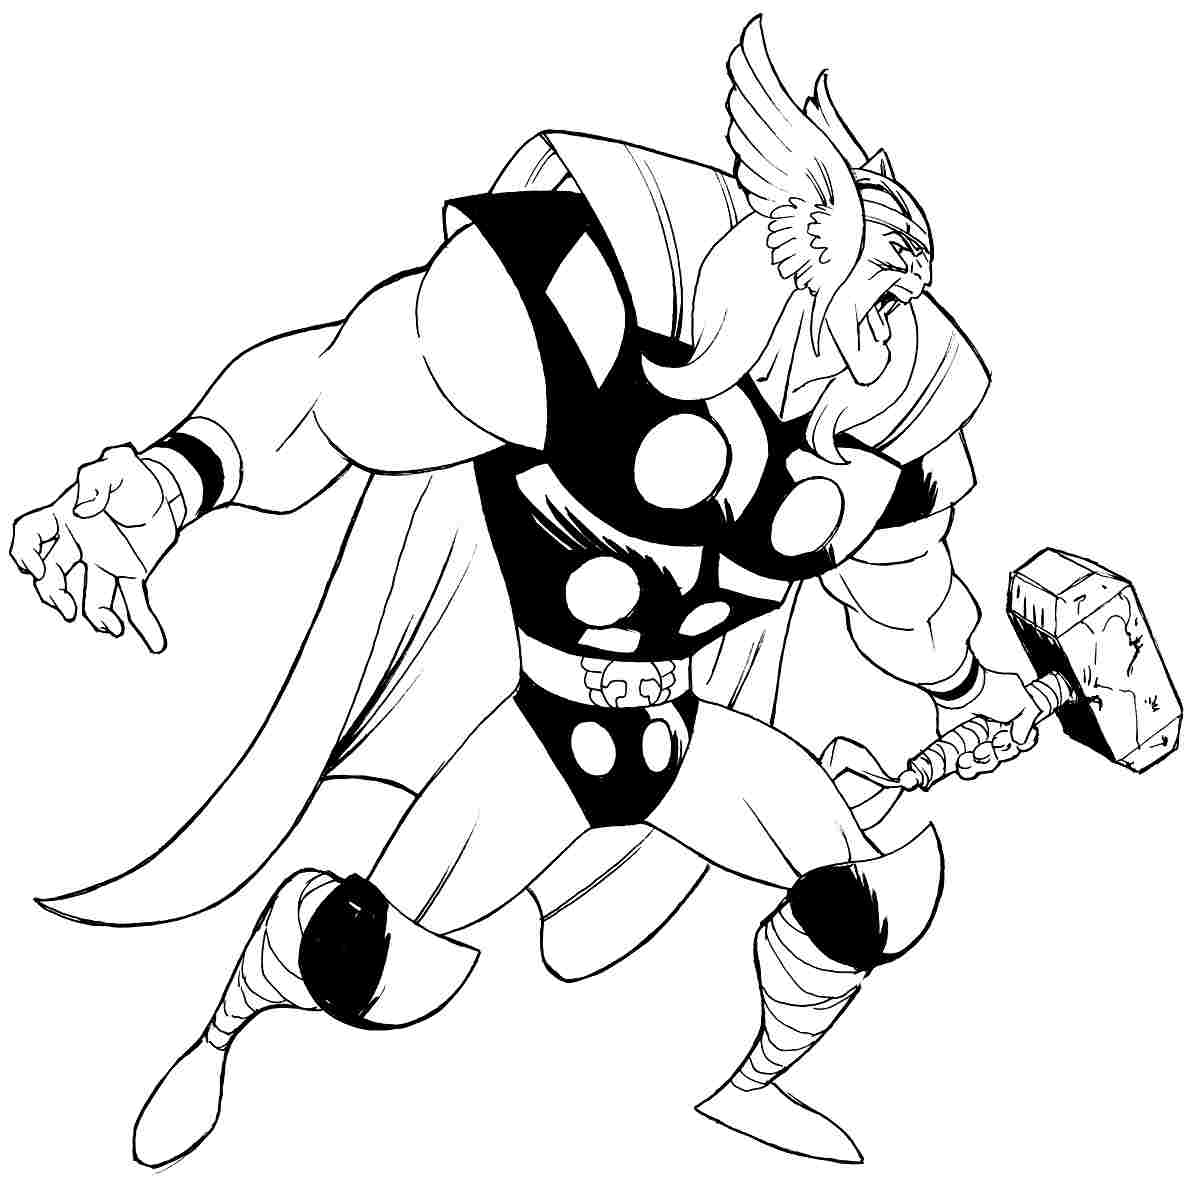 avengers for coloring avengers for coloring avengers coloring for